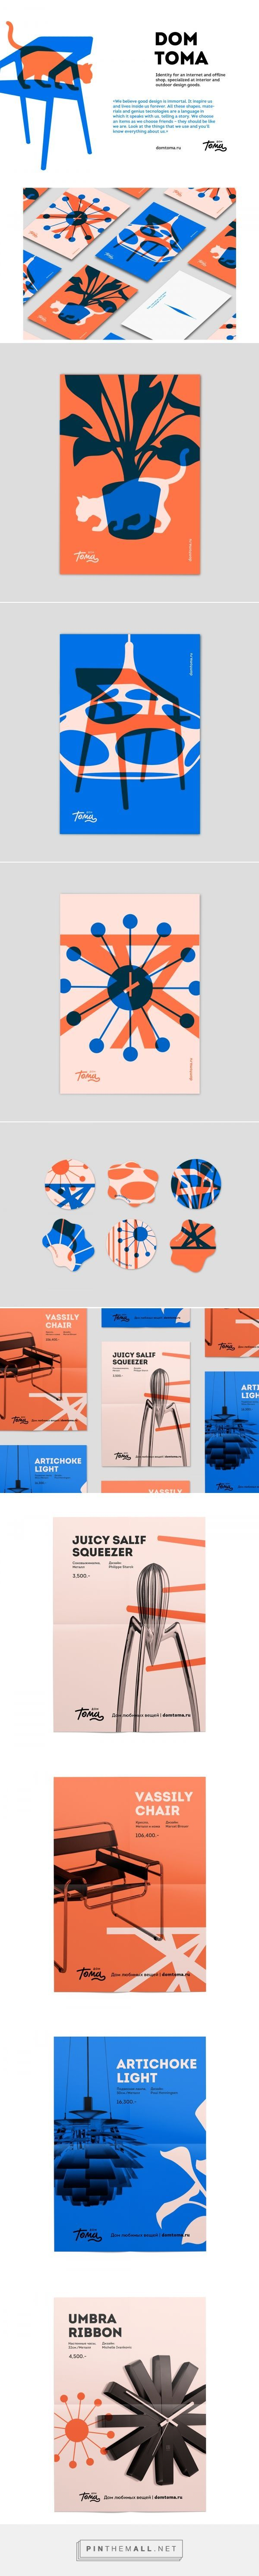 Dom Toma Indoor/Outdoor Products Store Branding by Anton Gorbunov | Fivestar Branding Agency – Design and Branding Agency & Curated Inspiration Gallery